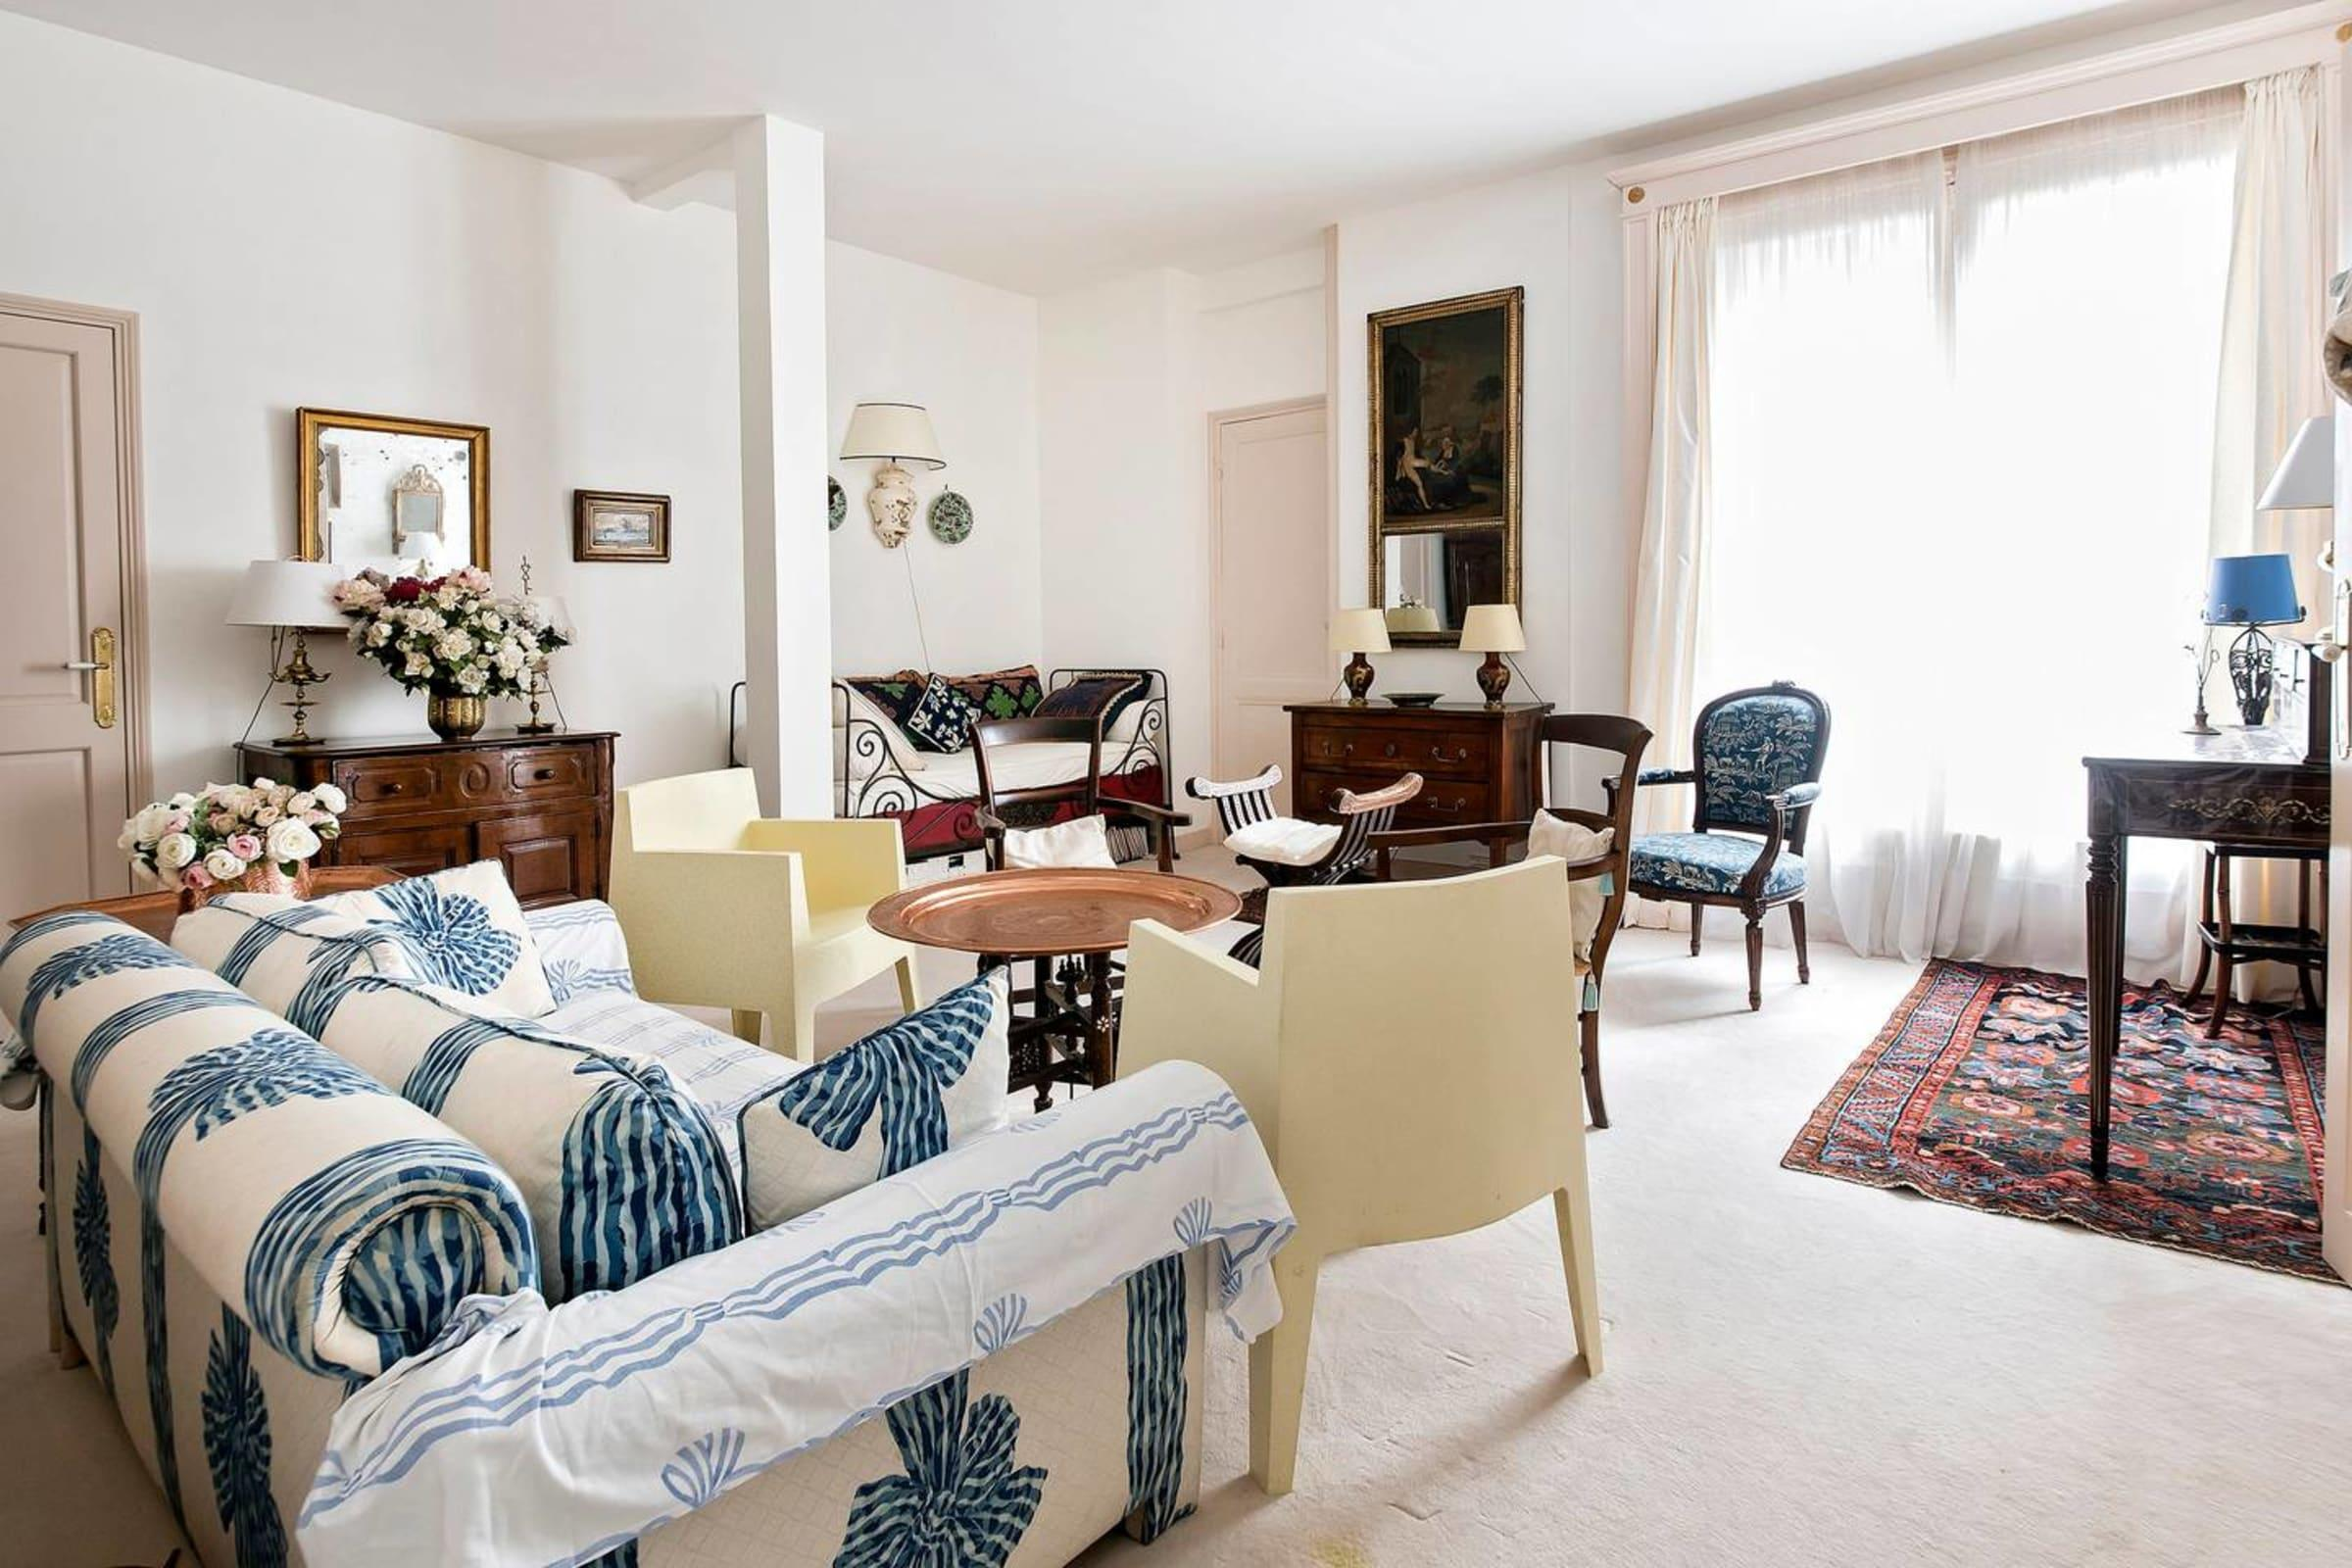 Property Image 1 - Beautiful and Homely Apartment - Pont de l'Alma